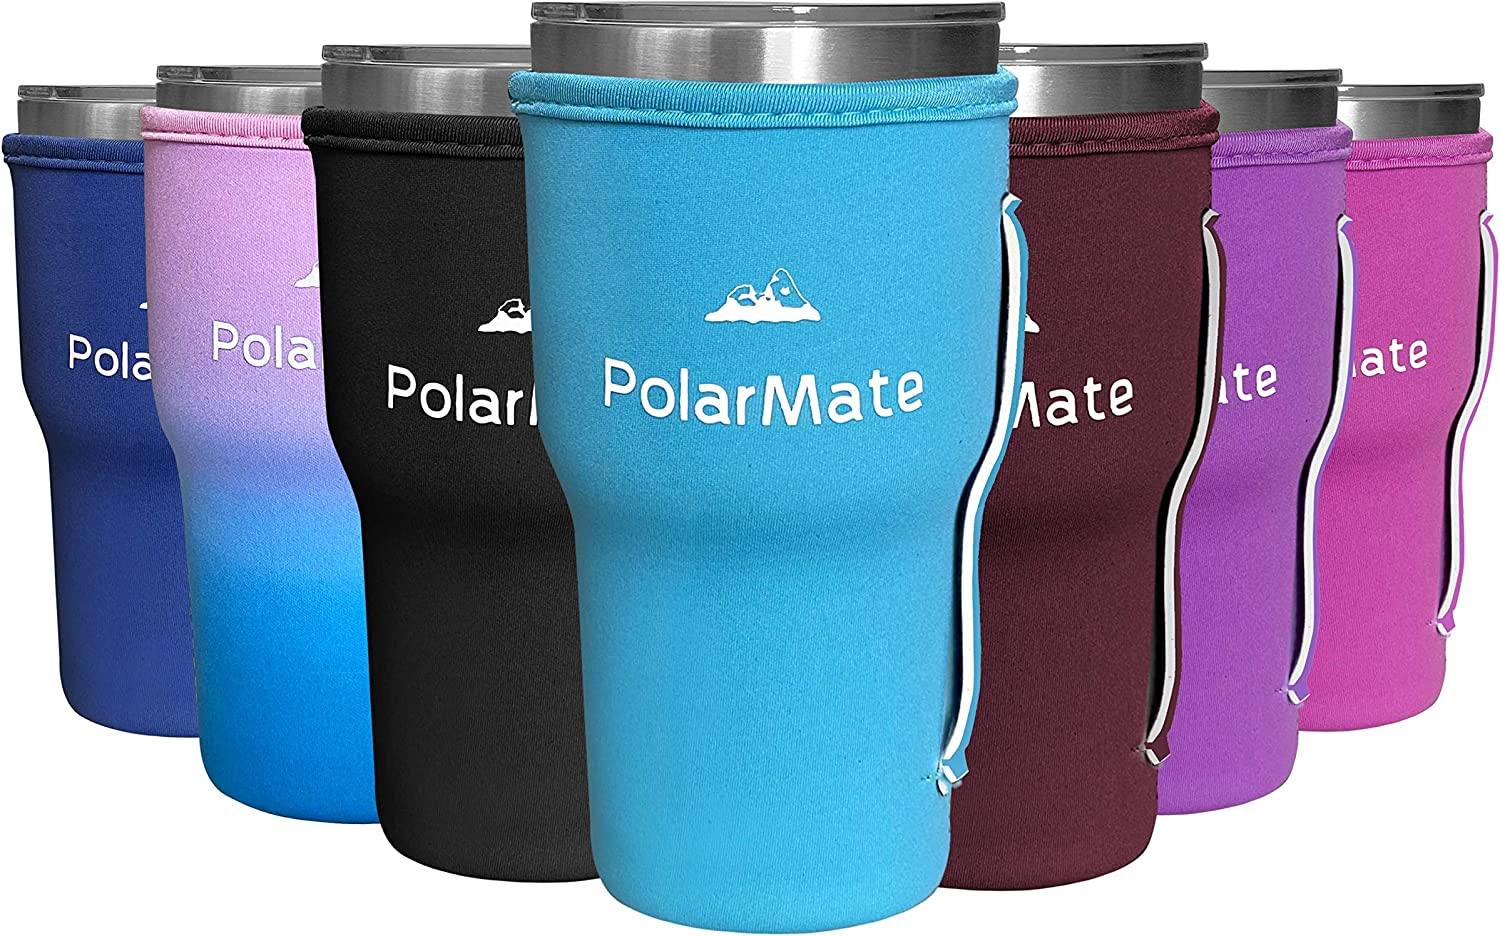 1 Pack Neoprene Tumbler Sleeves with Strap Handle | Insulator Tumblers Sleeve for Cold and Hot Drinks Beverages | Neoprene Tumbler Holder (Light Blue, 30 oz)